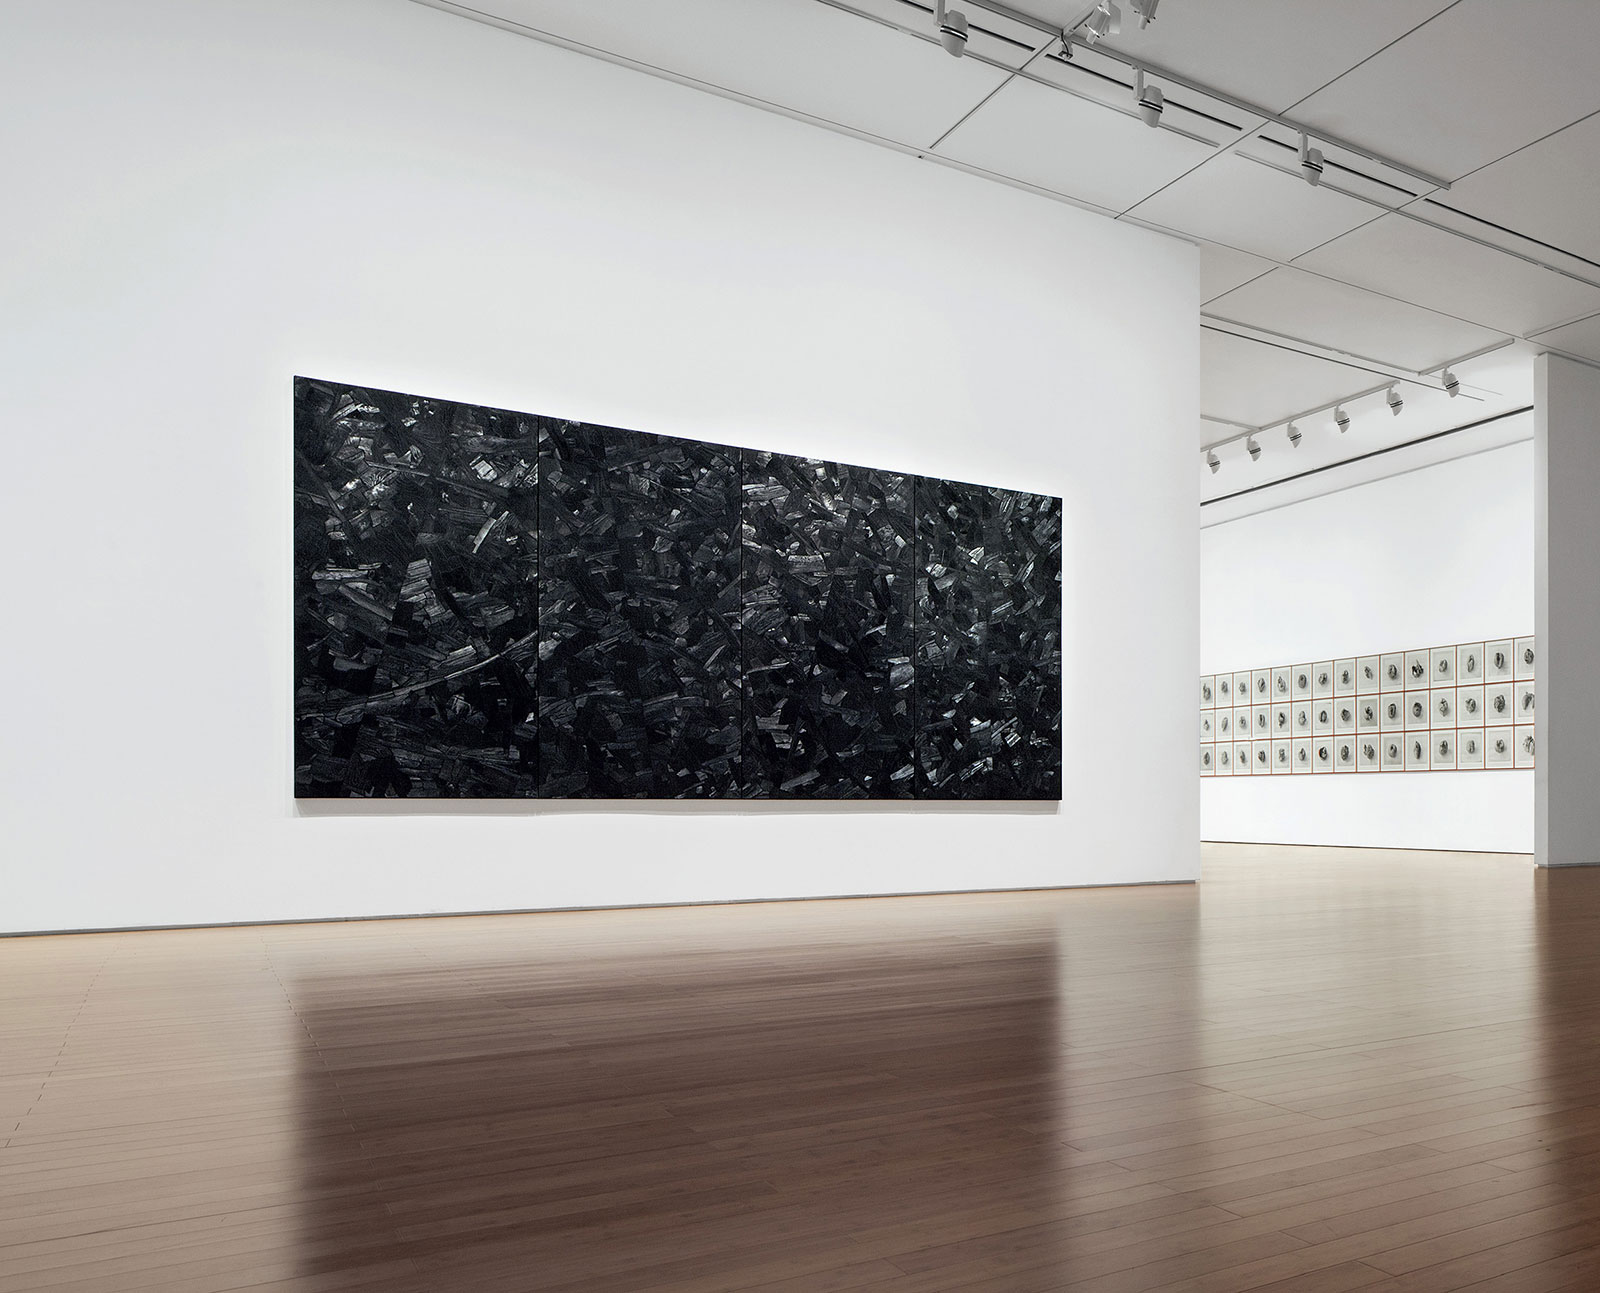 Issu du feu, Charcoal on canvas, 210 x 440 cm, 2000, Installation view, Daegu Art Museum, 2014